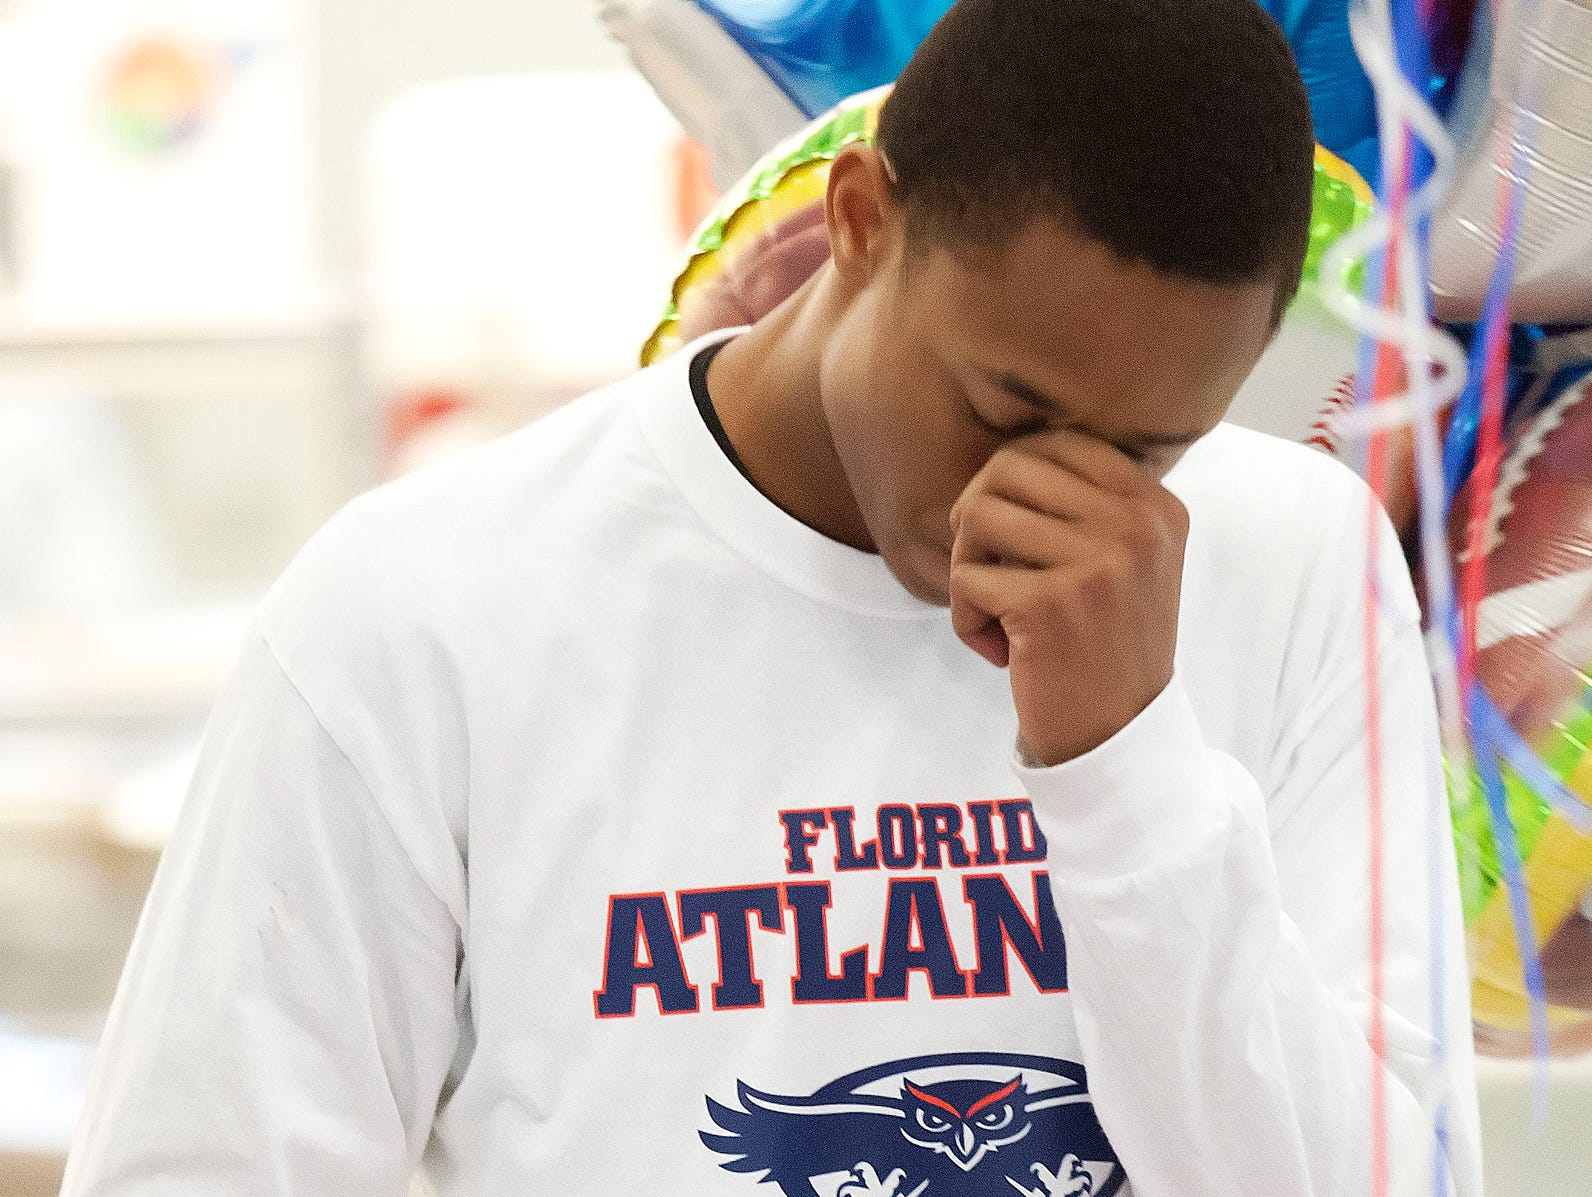 Fort Myers High School's James Brunson cries after speaking of his late father, James Brunson Sr., on Wednesday at Fort Myers High School. Brunson signed a National Letter of Intent to play football at Florida Atlantic University.